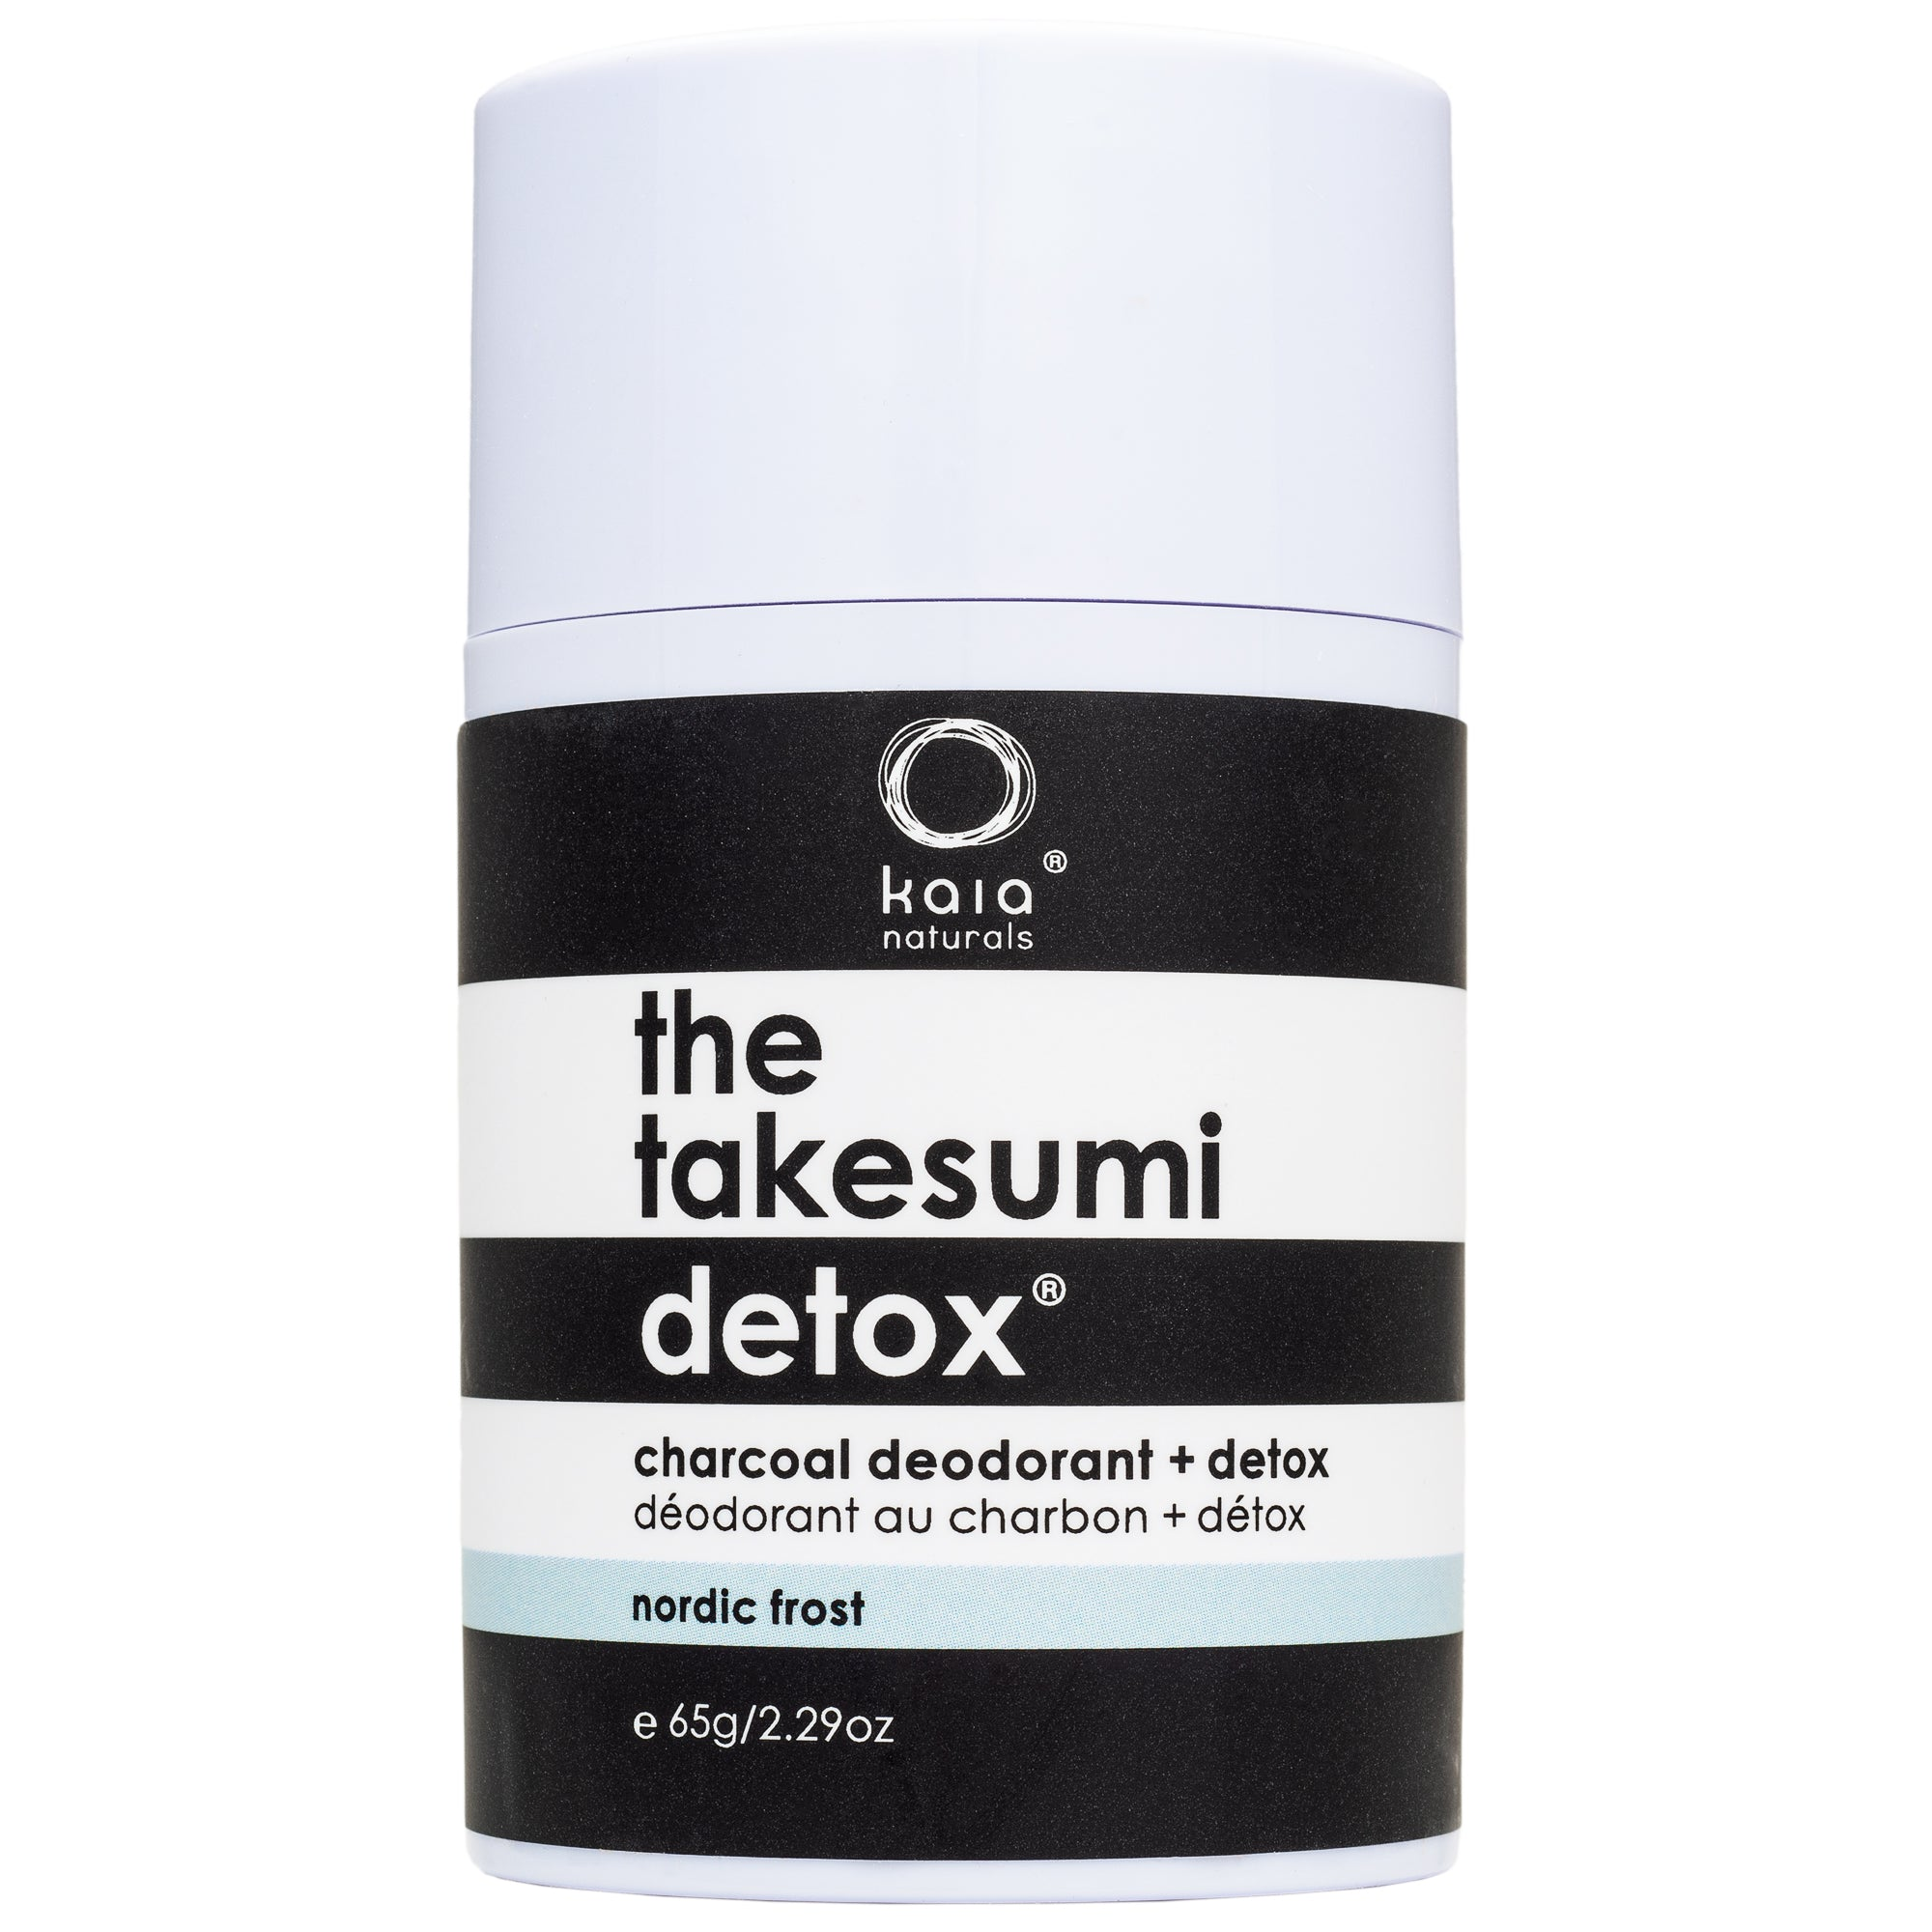 The Takesumi Detox Charcoal Deodorant and Detox Nordic Frost